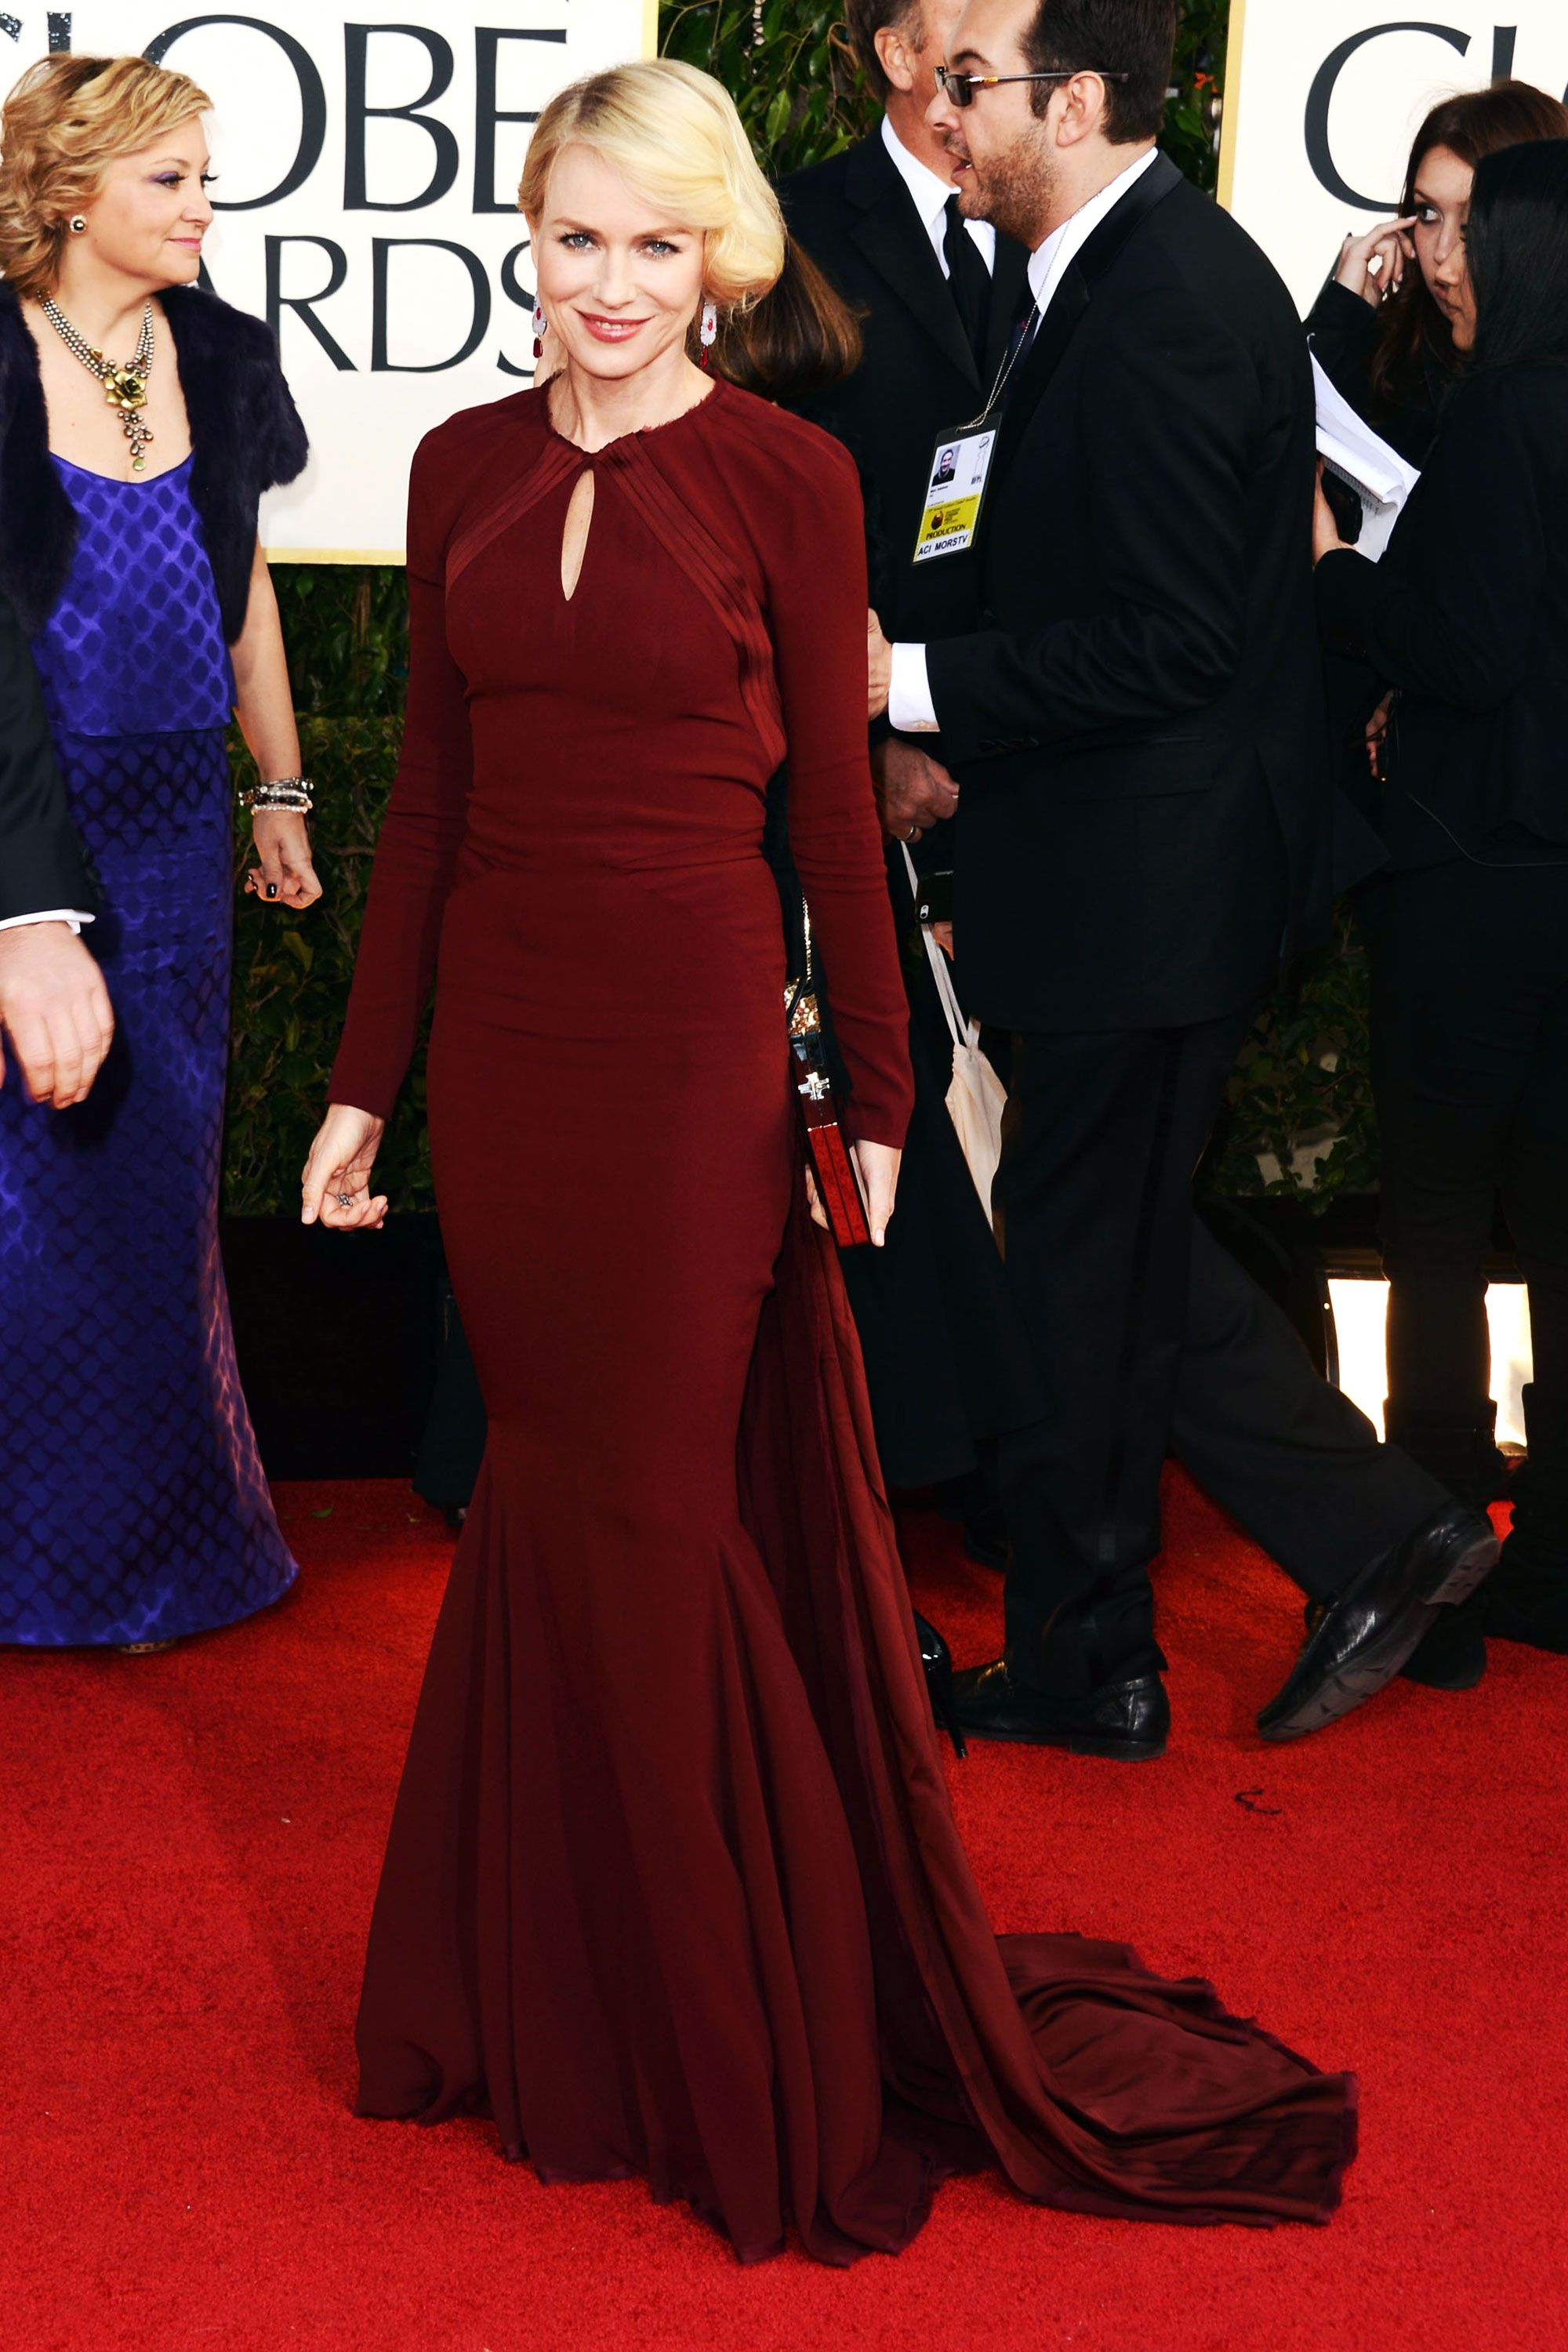 The 100 Best Red Carpet Gowns | Golden globe award, Globe awards and ...